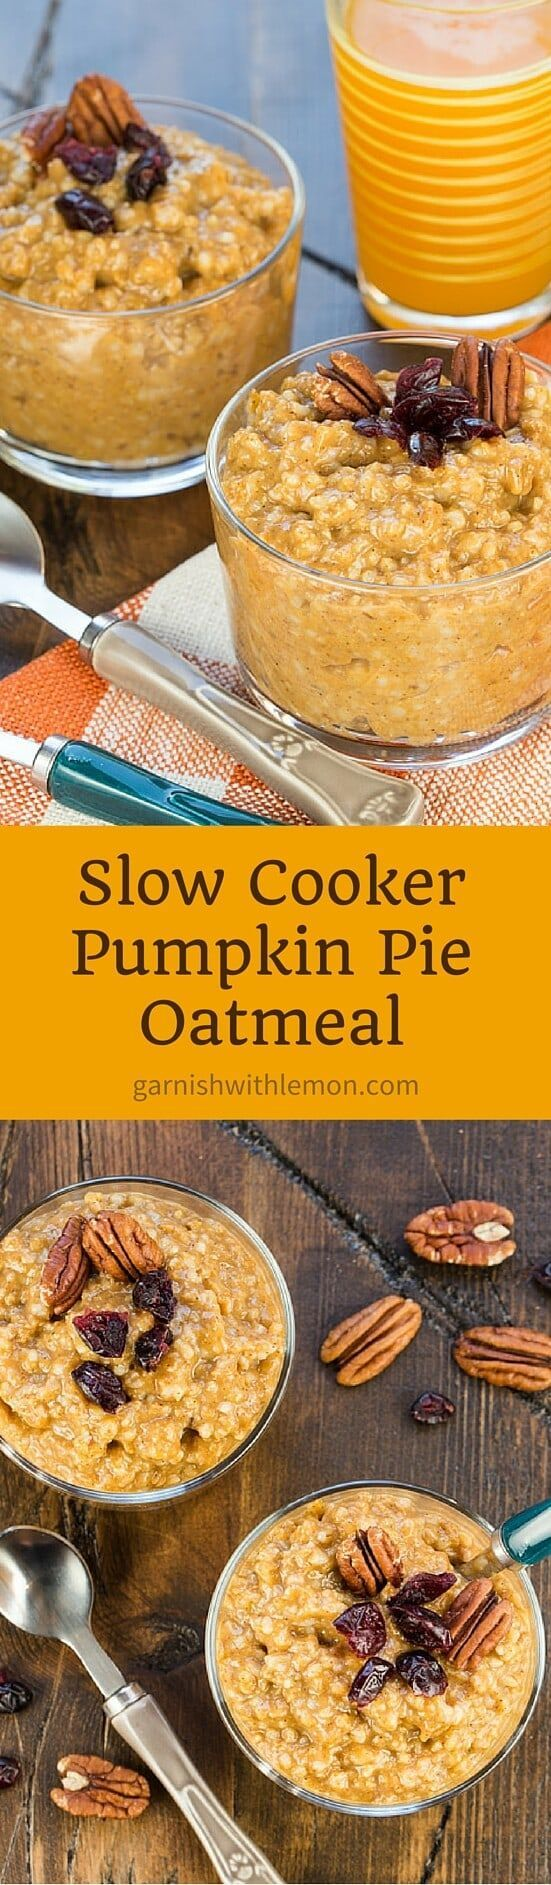 Yes, you can have pie for breakfast! This no-fuss Slow Cooker Pumpkin Pie Oatmeal has all the flavor of dessert but with a healthier spin for morning eats.